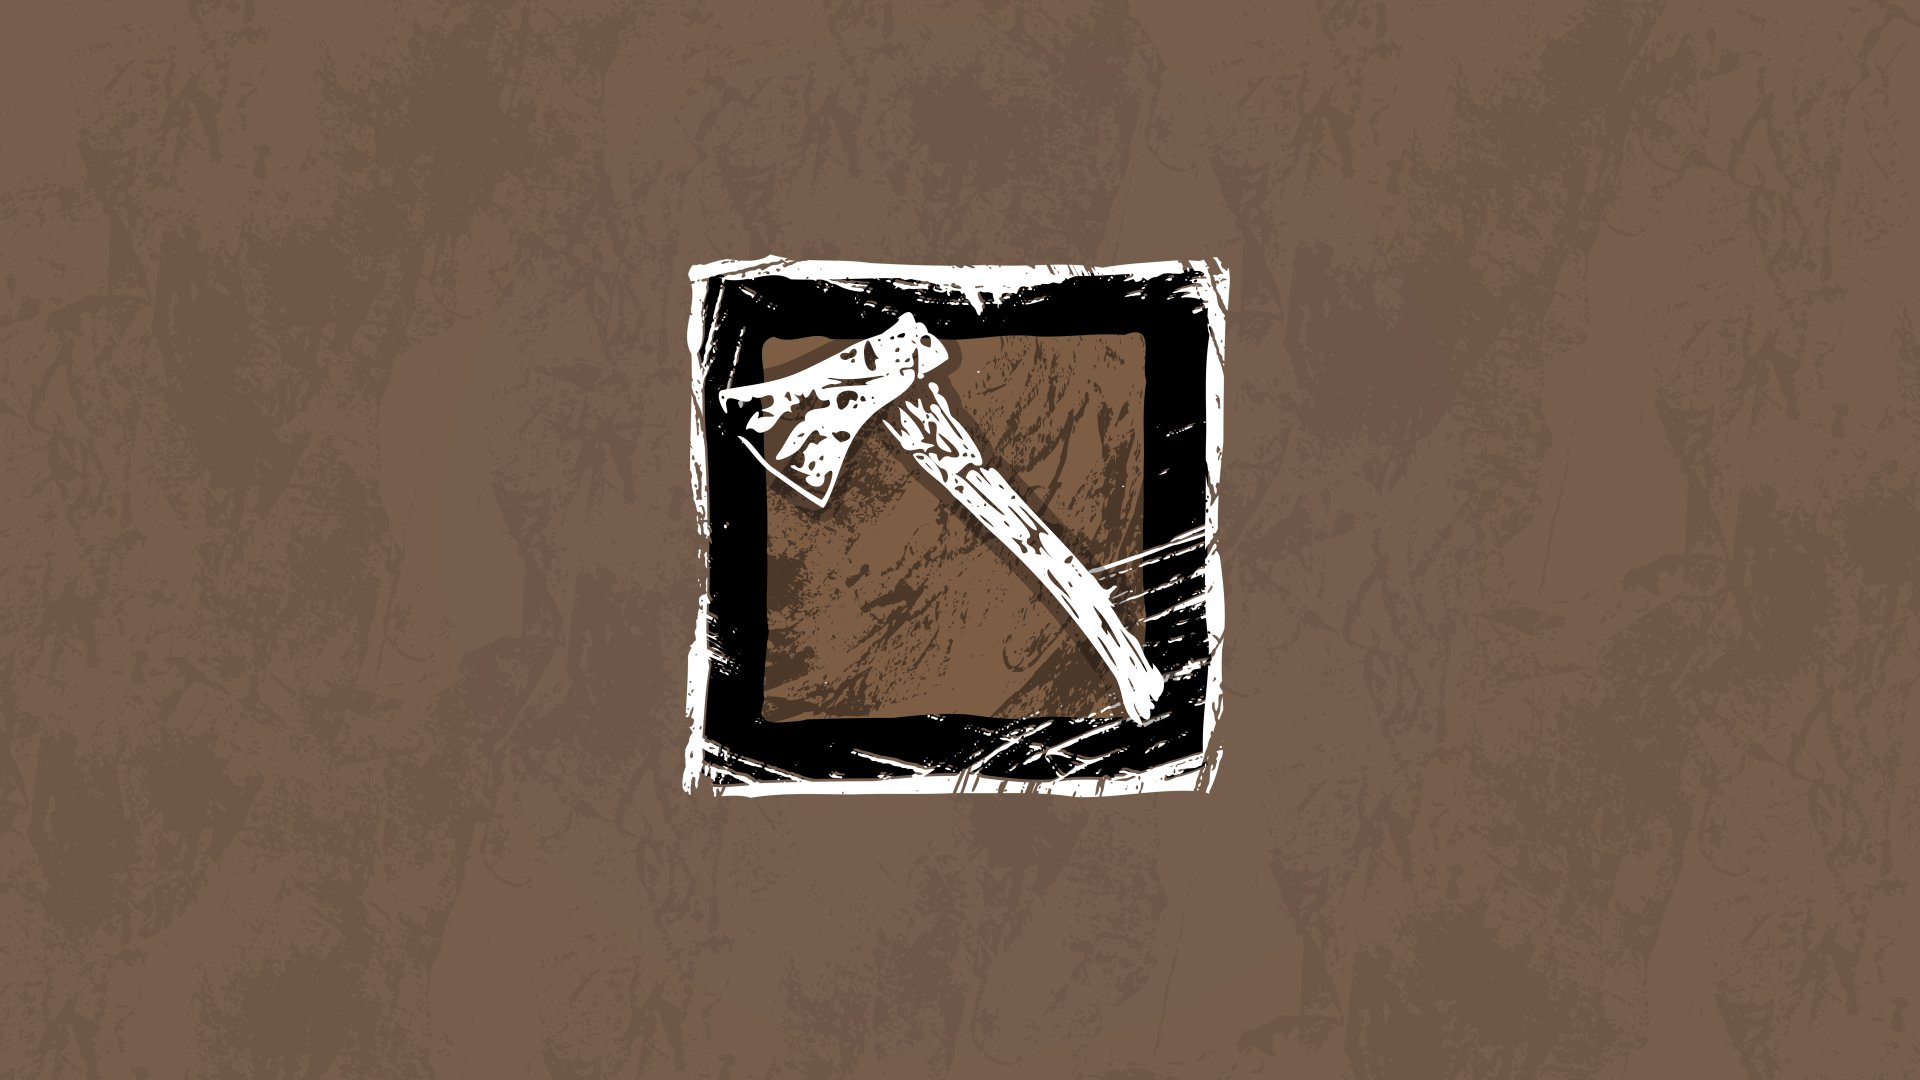 Video Game - Dead by Daylight  Hunting Hatches (Dead by Daylight) Minimalist Video Game Wallpaper